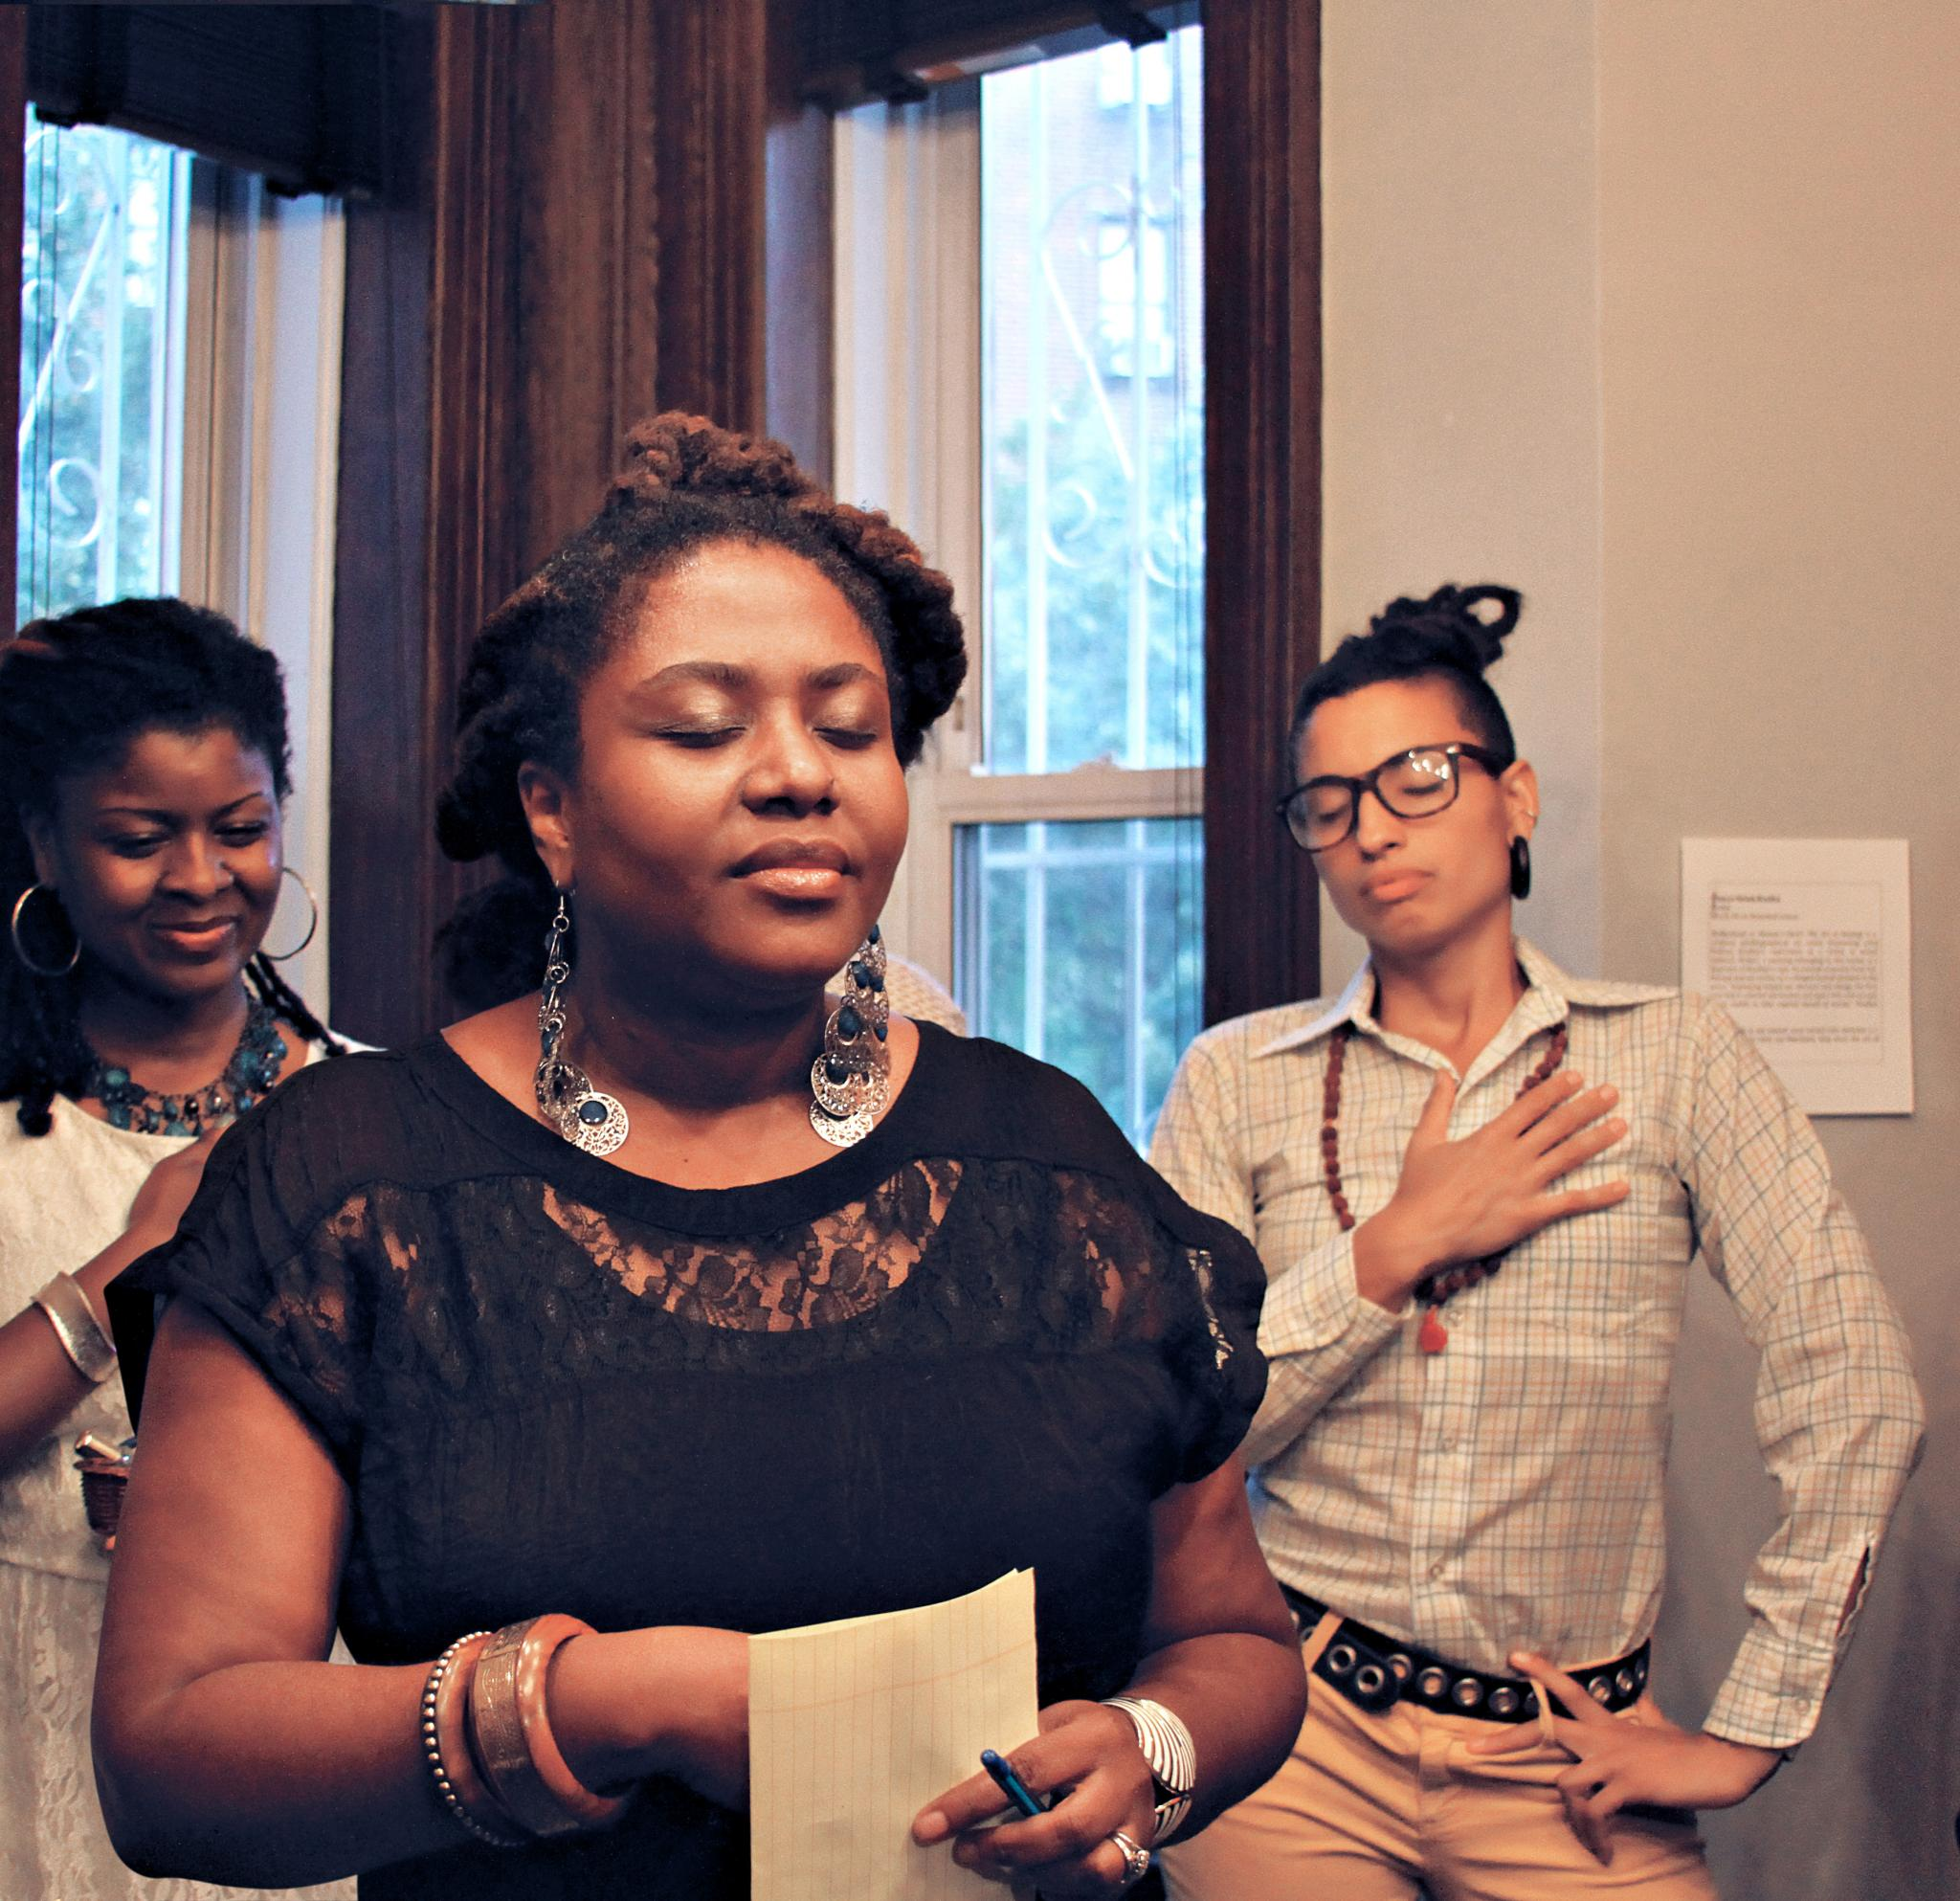 Brooklyn Women Barter Goods and Services to Ease Hard Economy